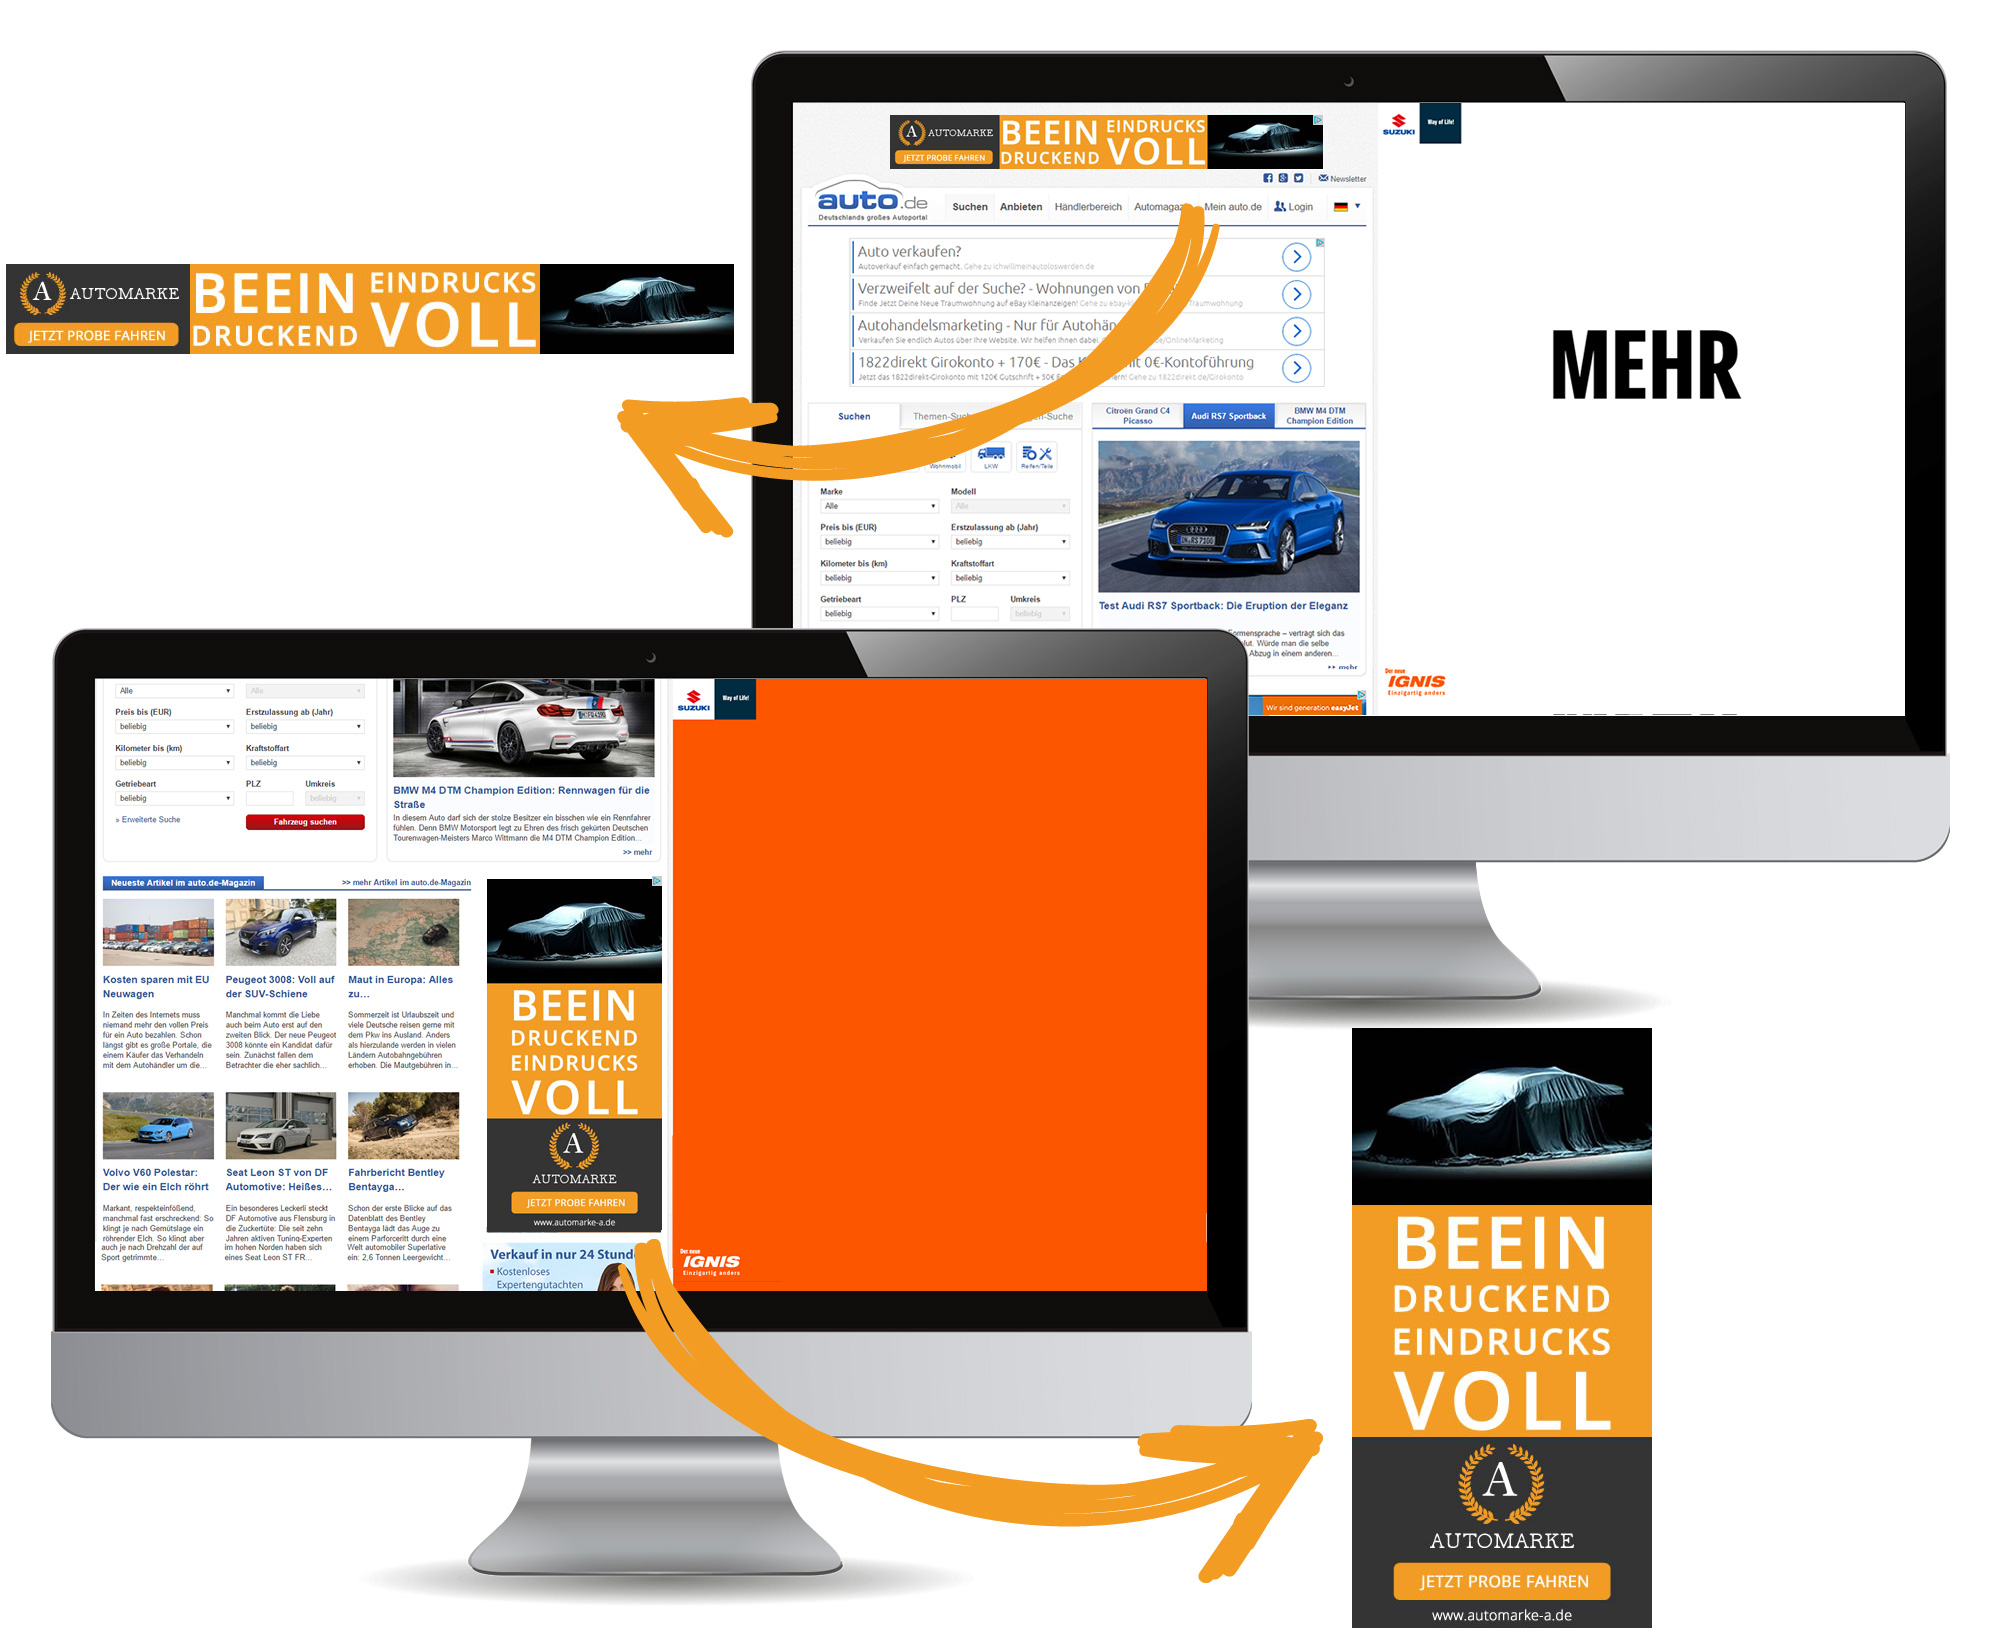 Autohaus Online-Marketing durch Bannerwerbung